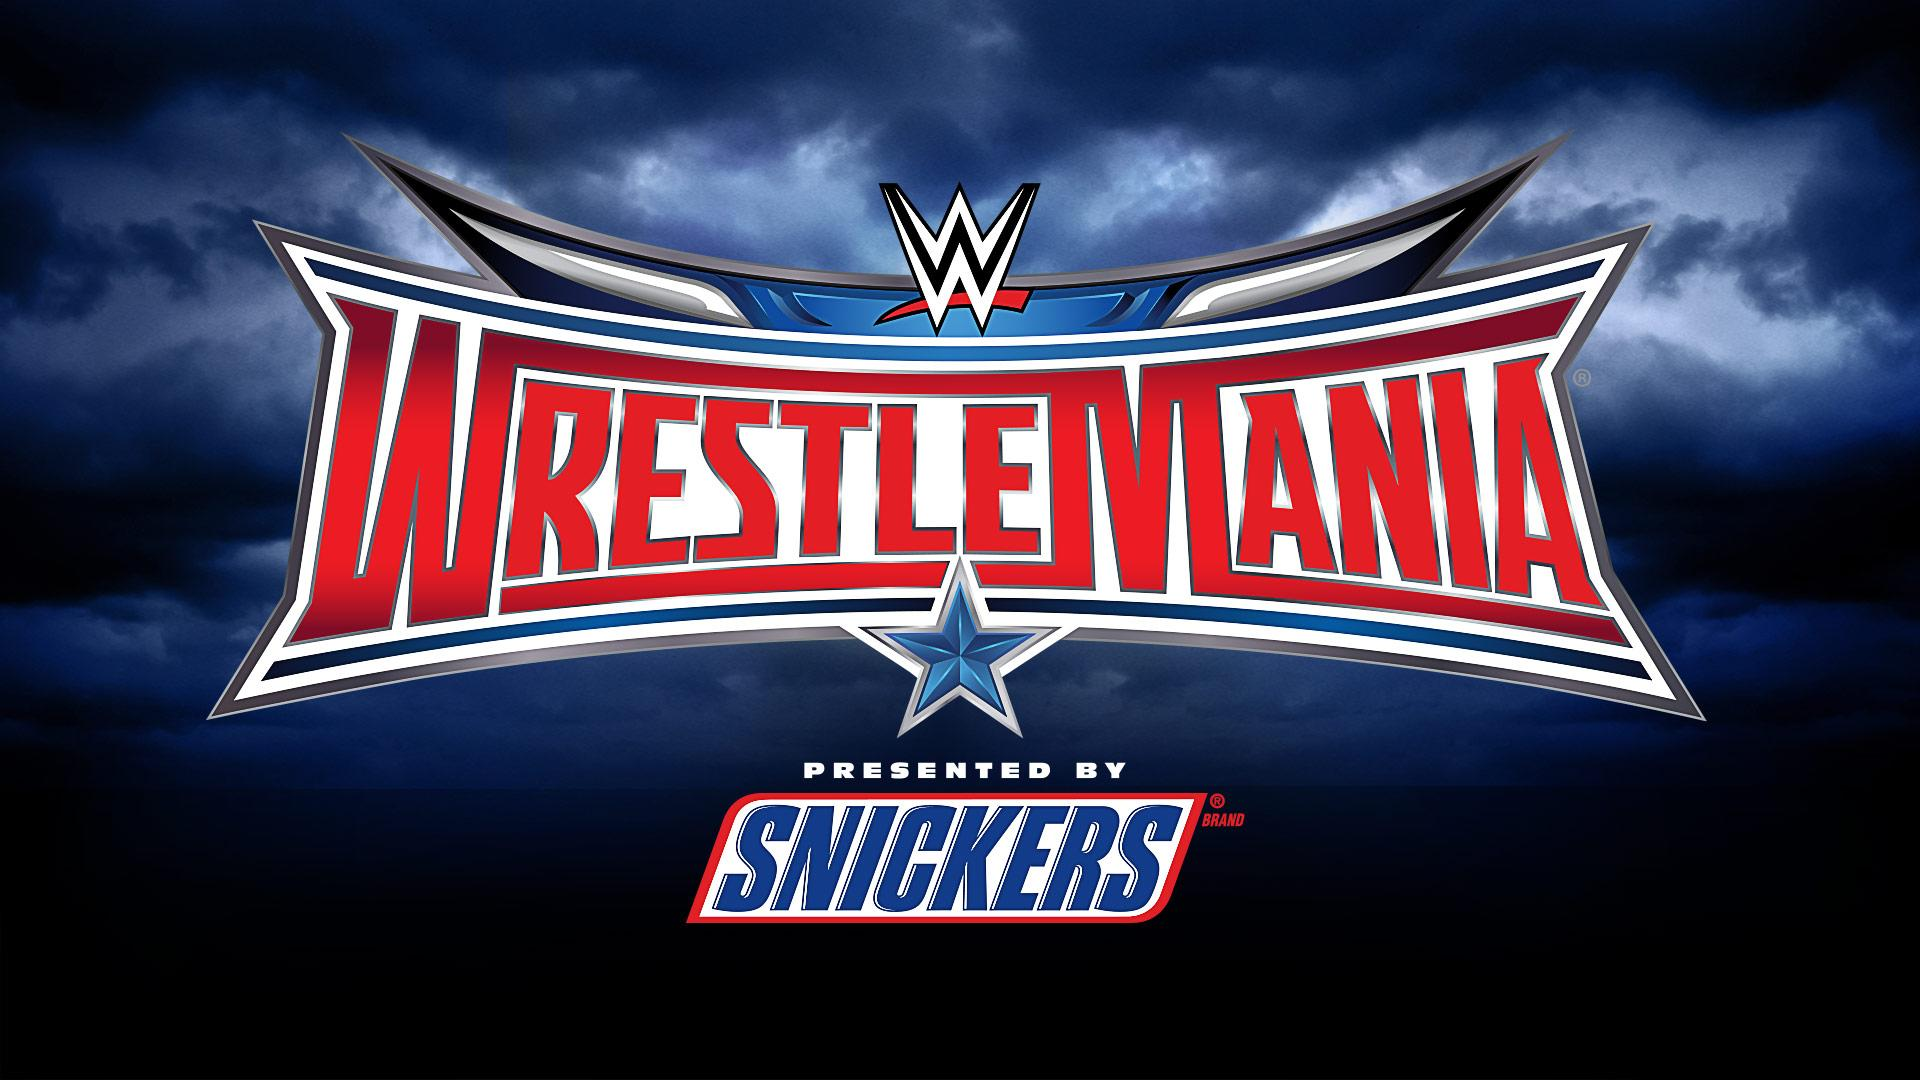 WrestleMania 32 Preview and Predictions